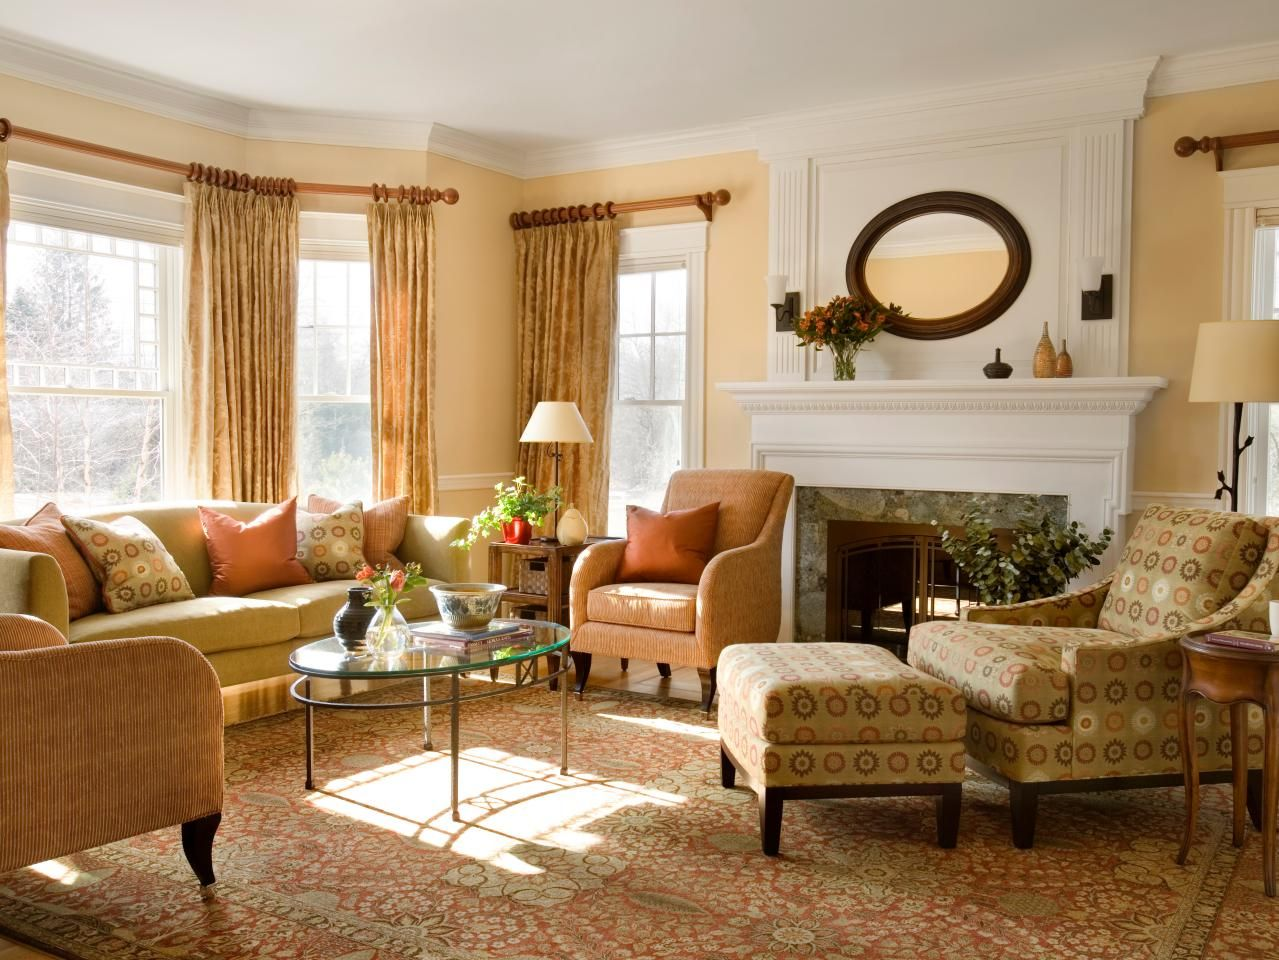 29+ Furniture arrangement for small living room ideas